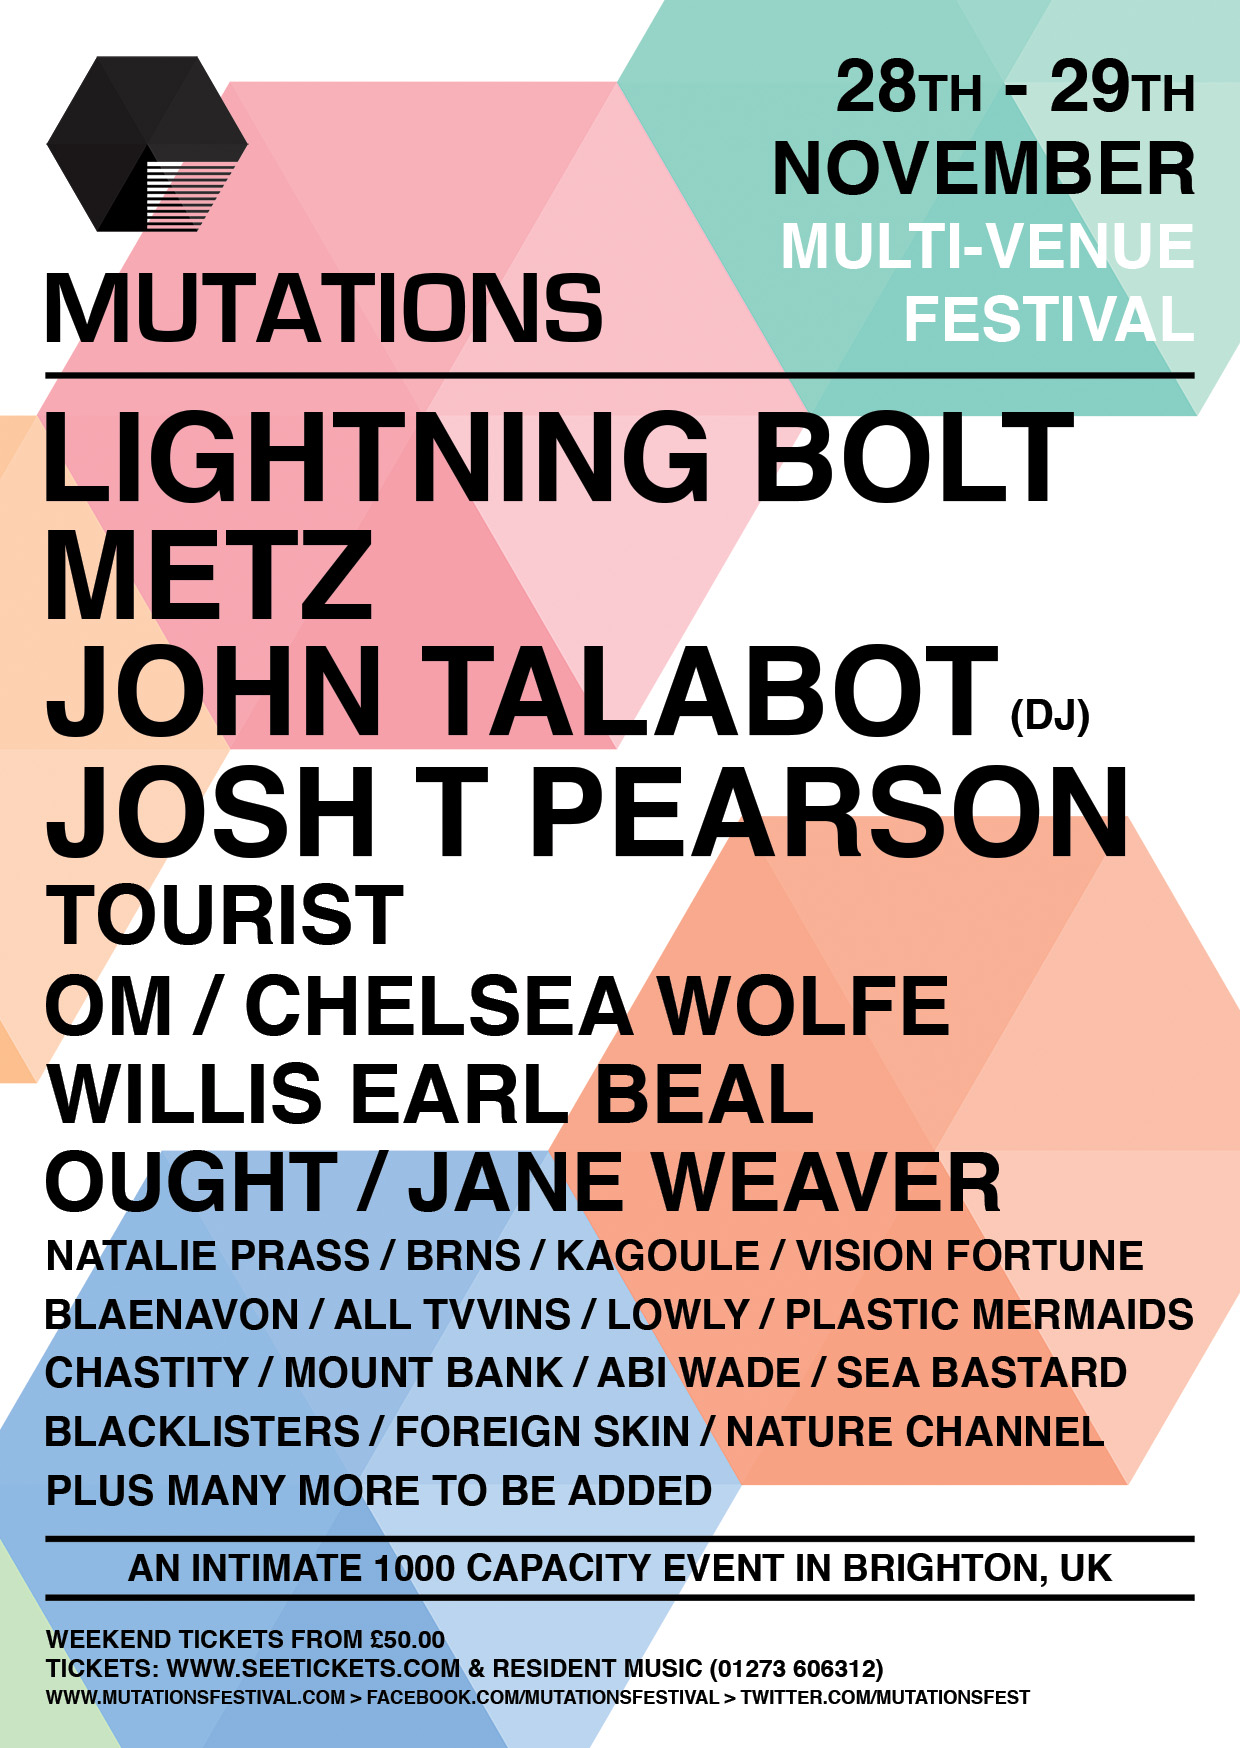 chastity mutations festival tour poster